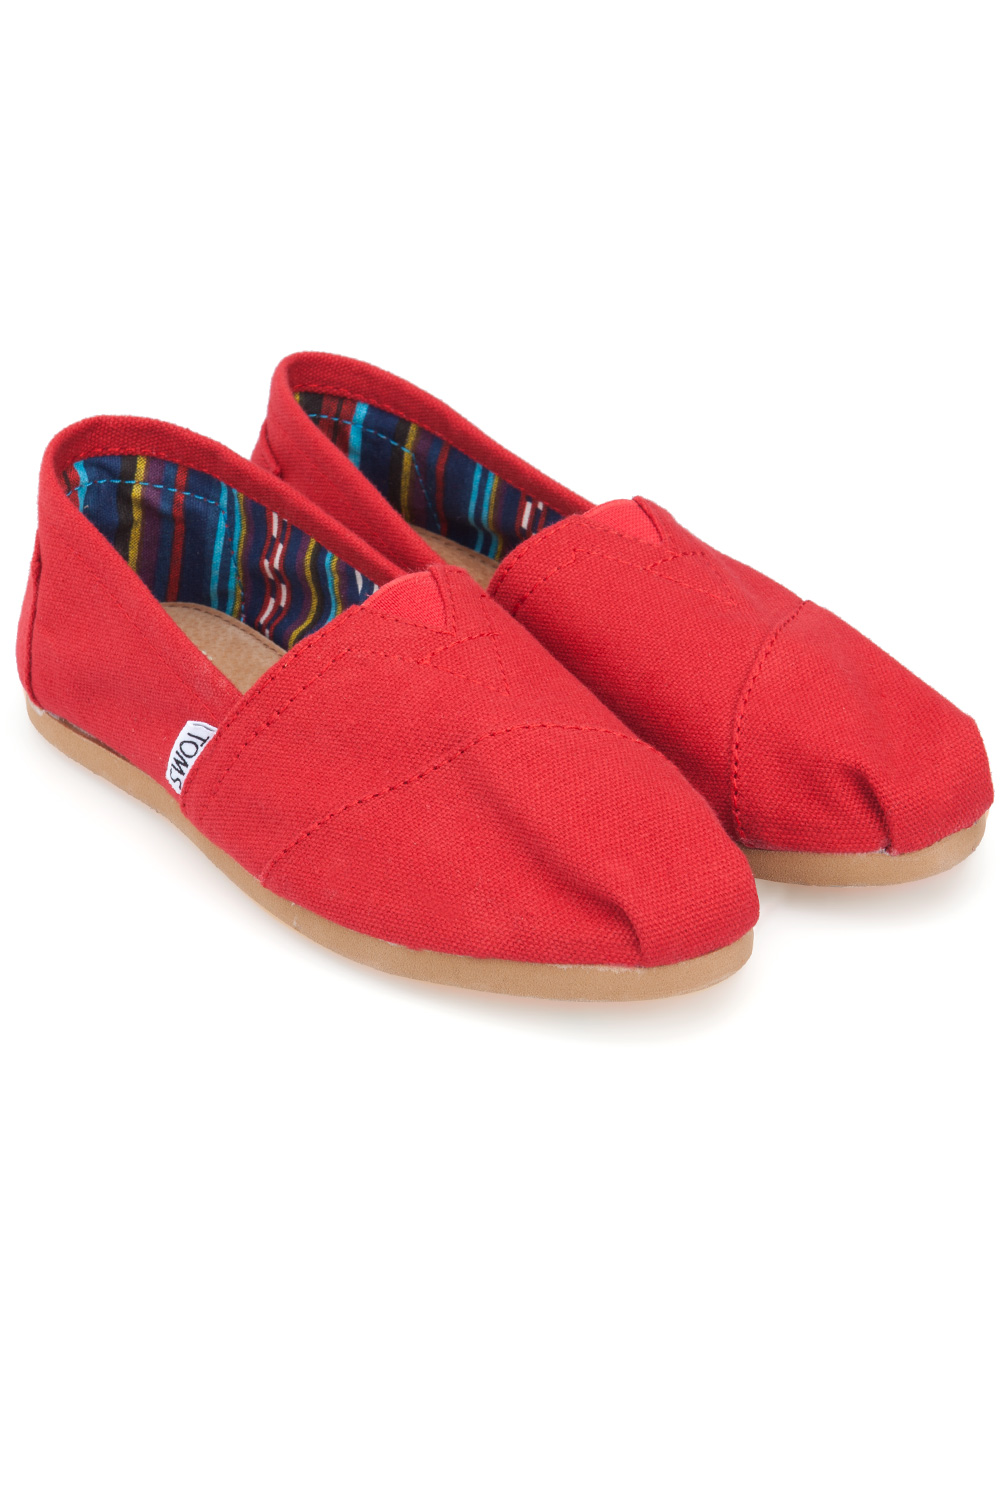 ... toms-red-canvas-classic-womens-slip-on-red ... a5daf65bf8c4